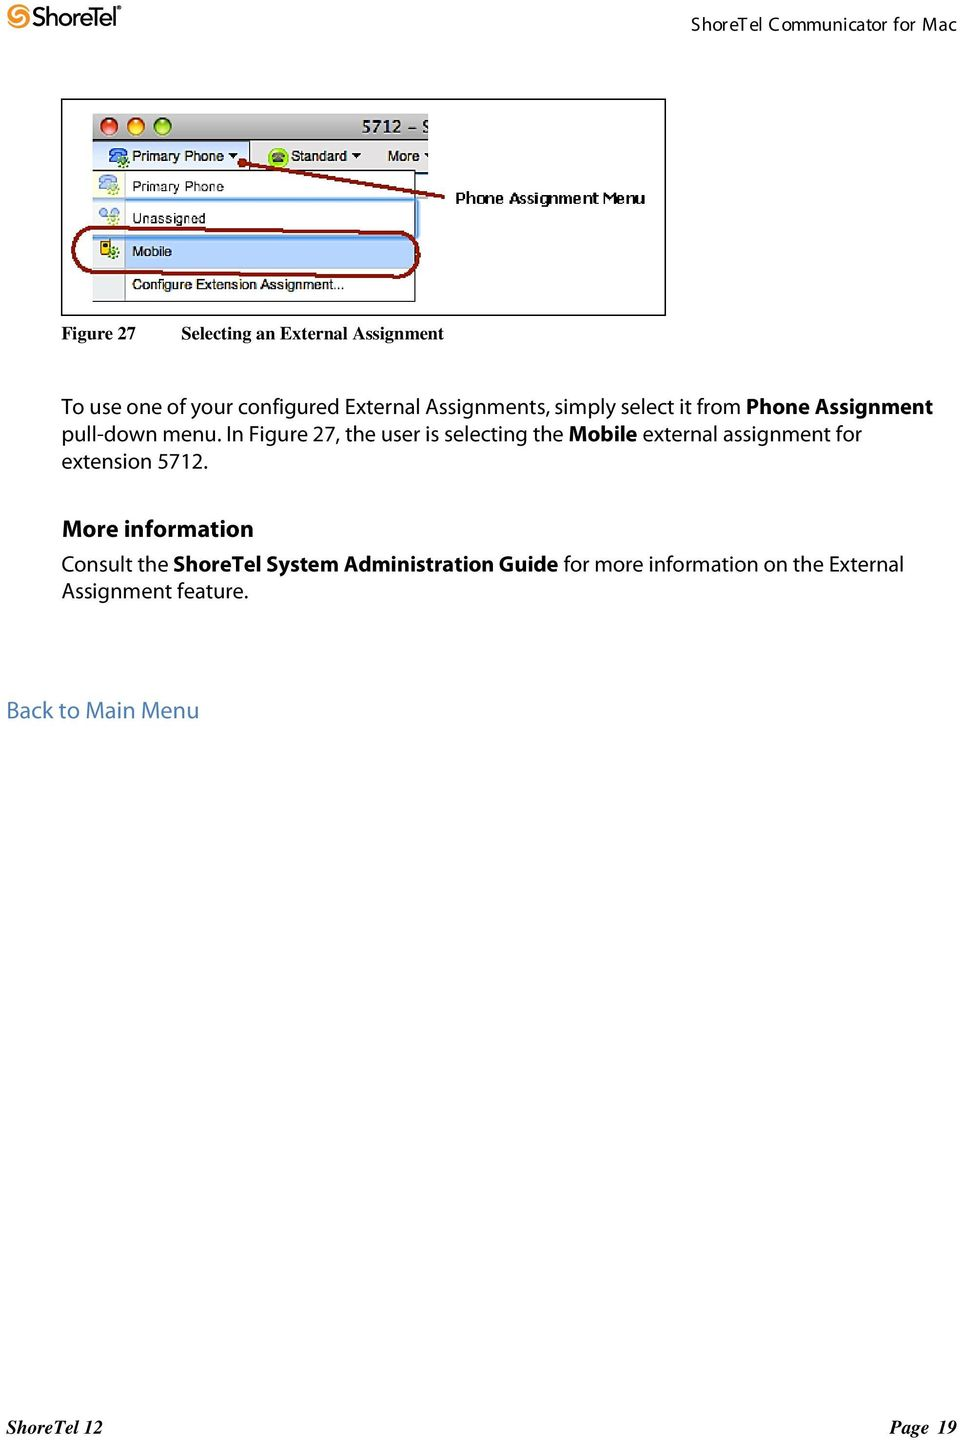 In Figure 27, the user is selecting the Mobile external assignment for extension 5712.